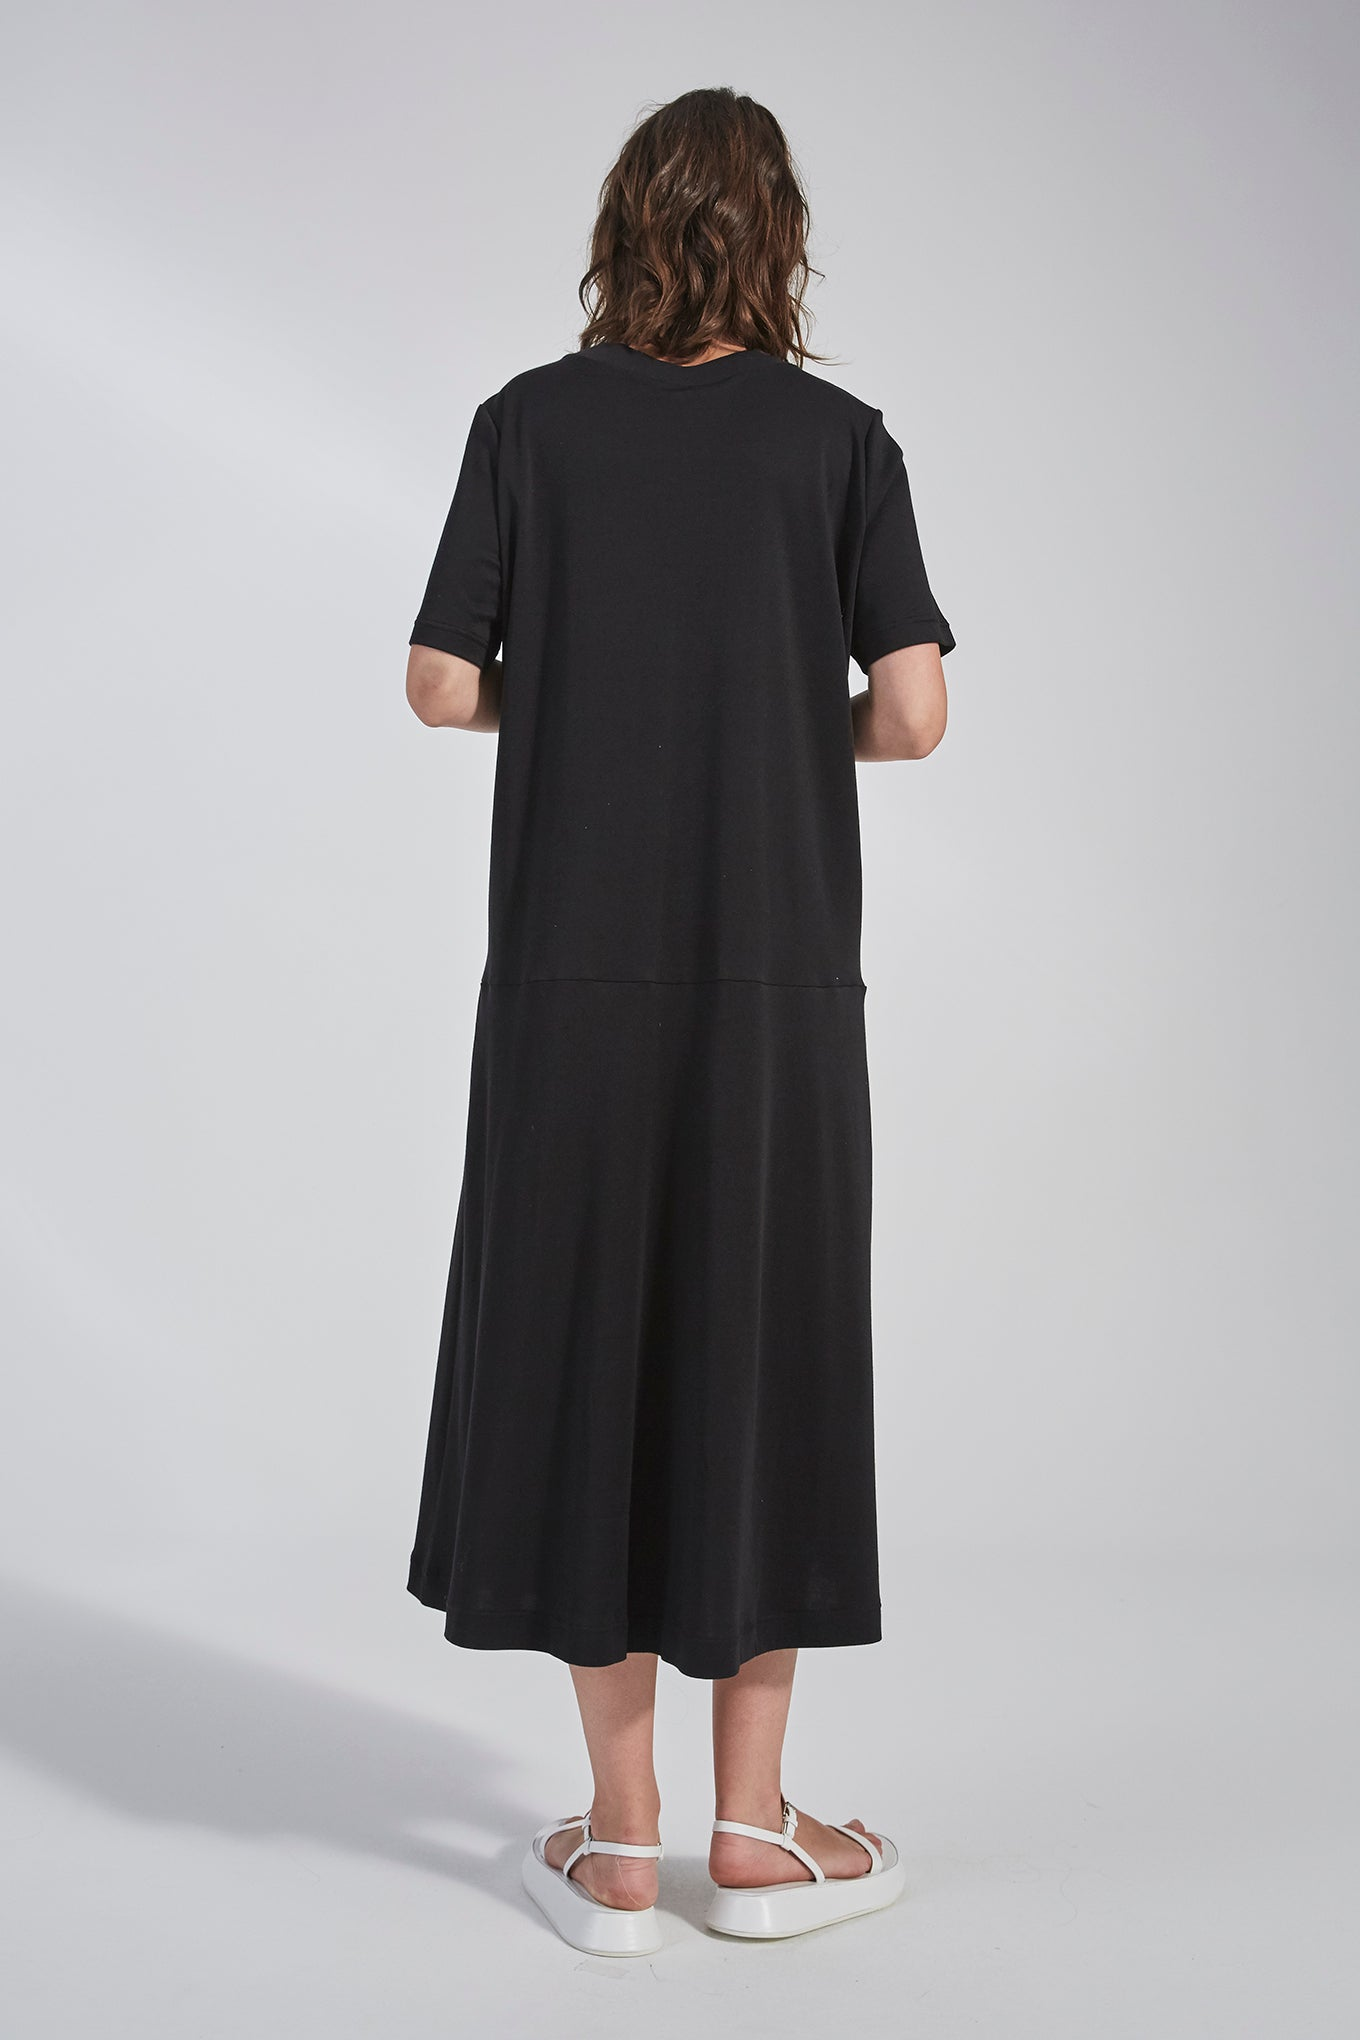 Holden Jersey Dress - Black - Silk/Cotton Jersey